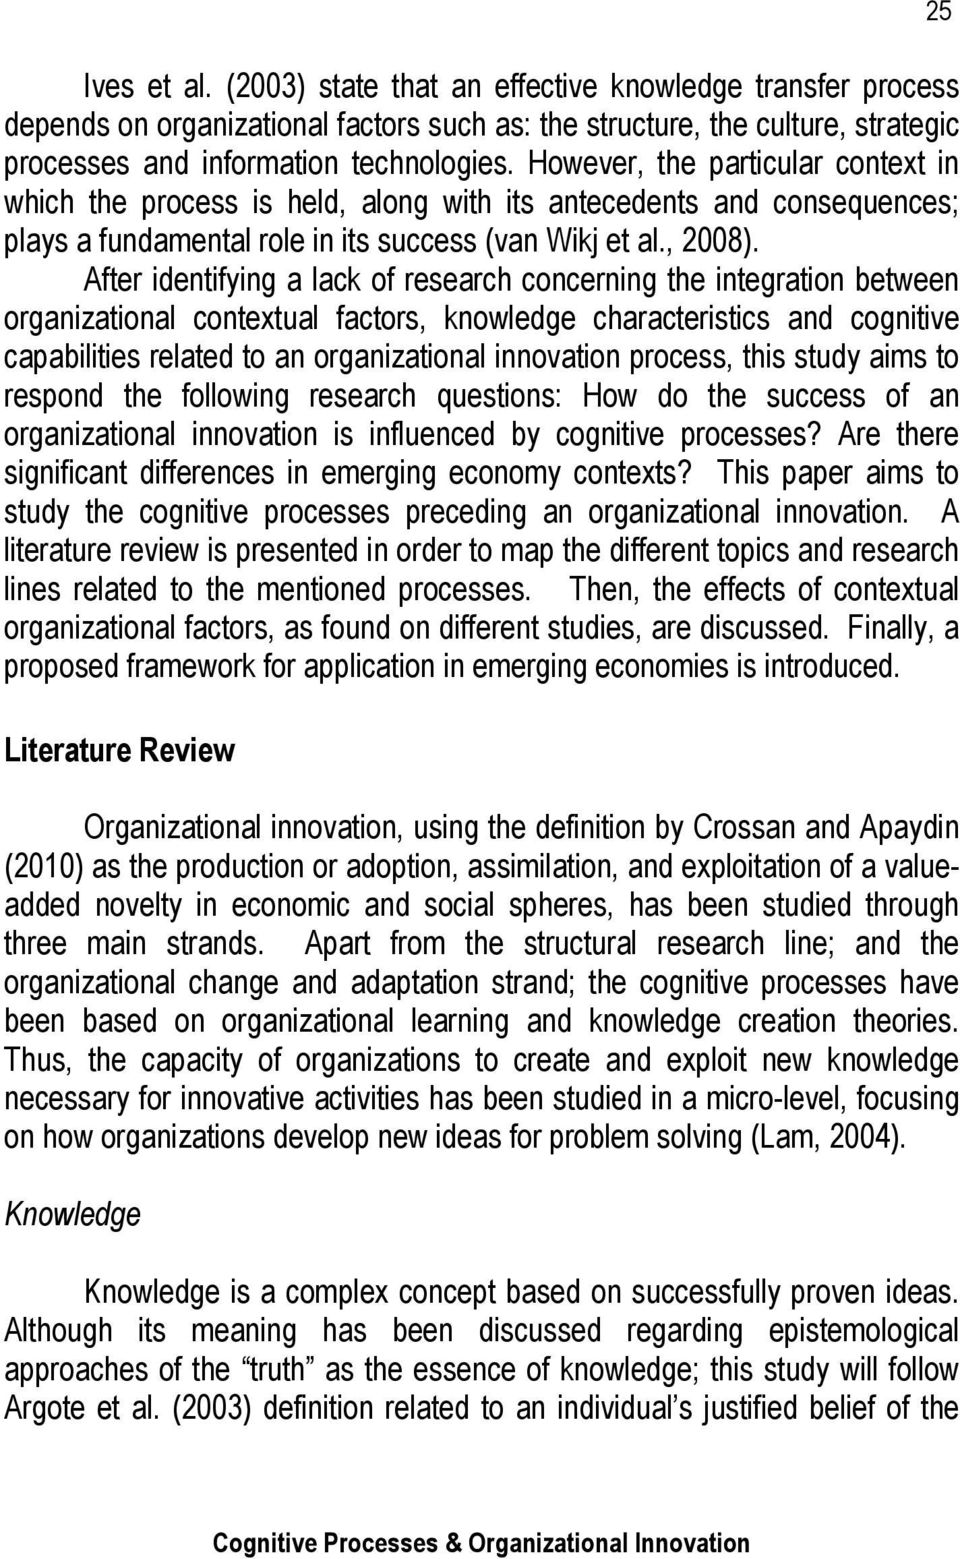 After identifying a lack of research concerning the integration between organizational contextual factors, knowledge characteristics and cognitive capabilities related to an organizational innovation